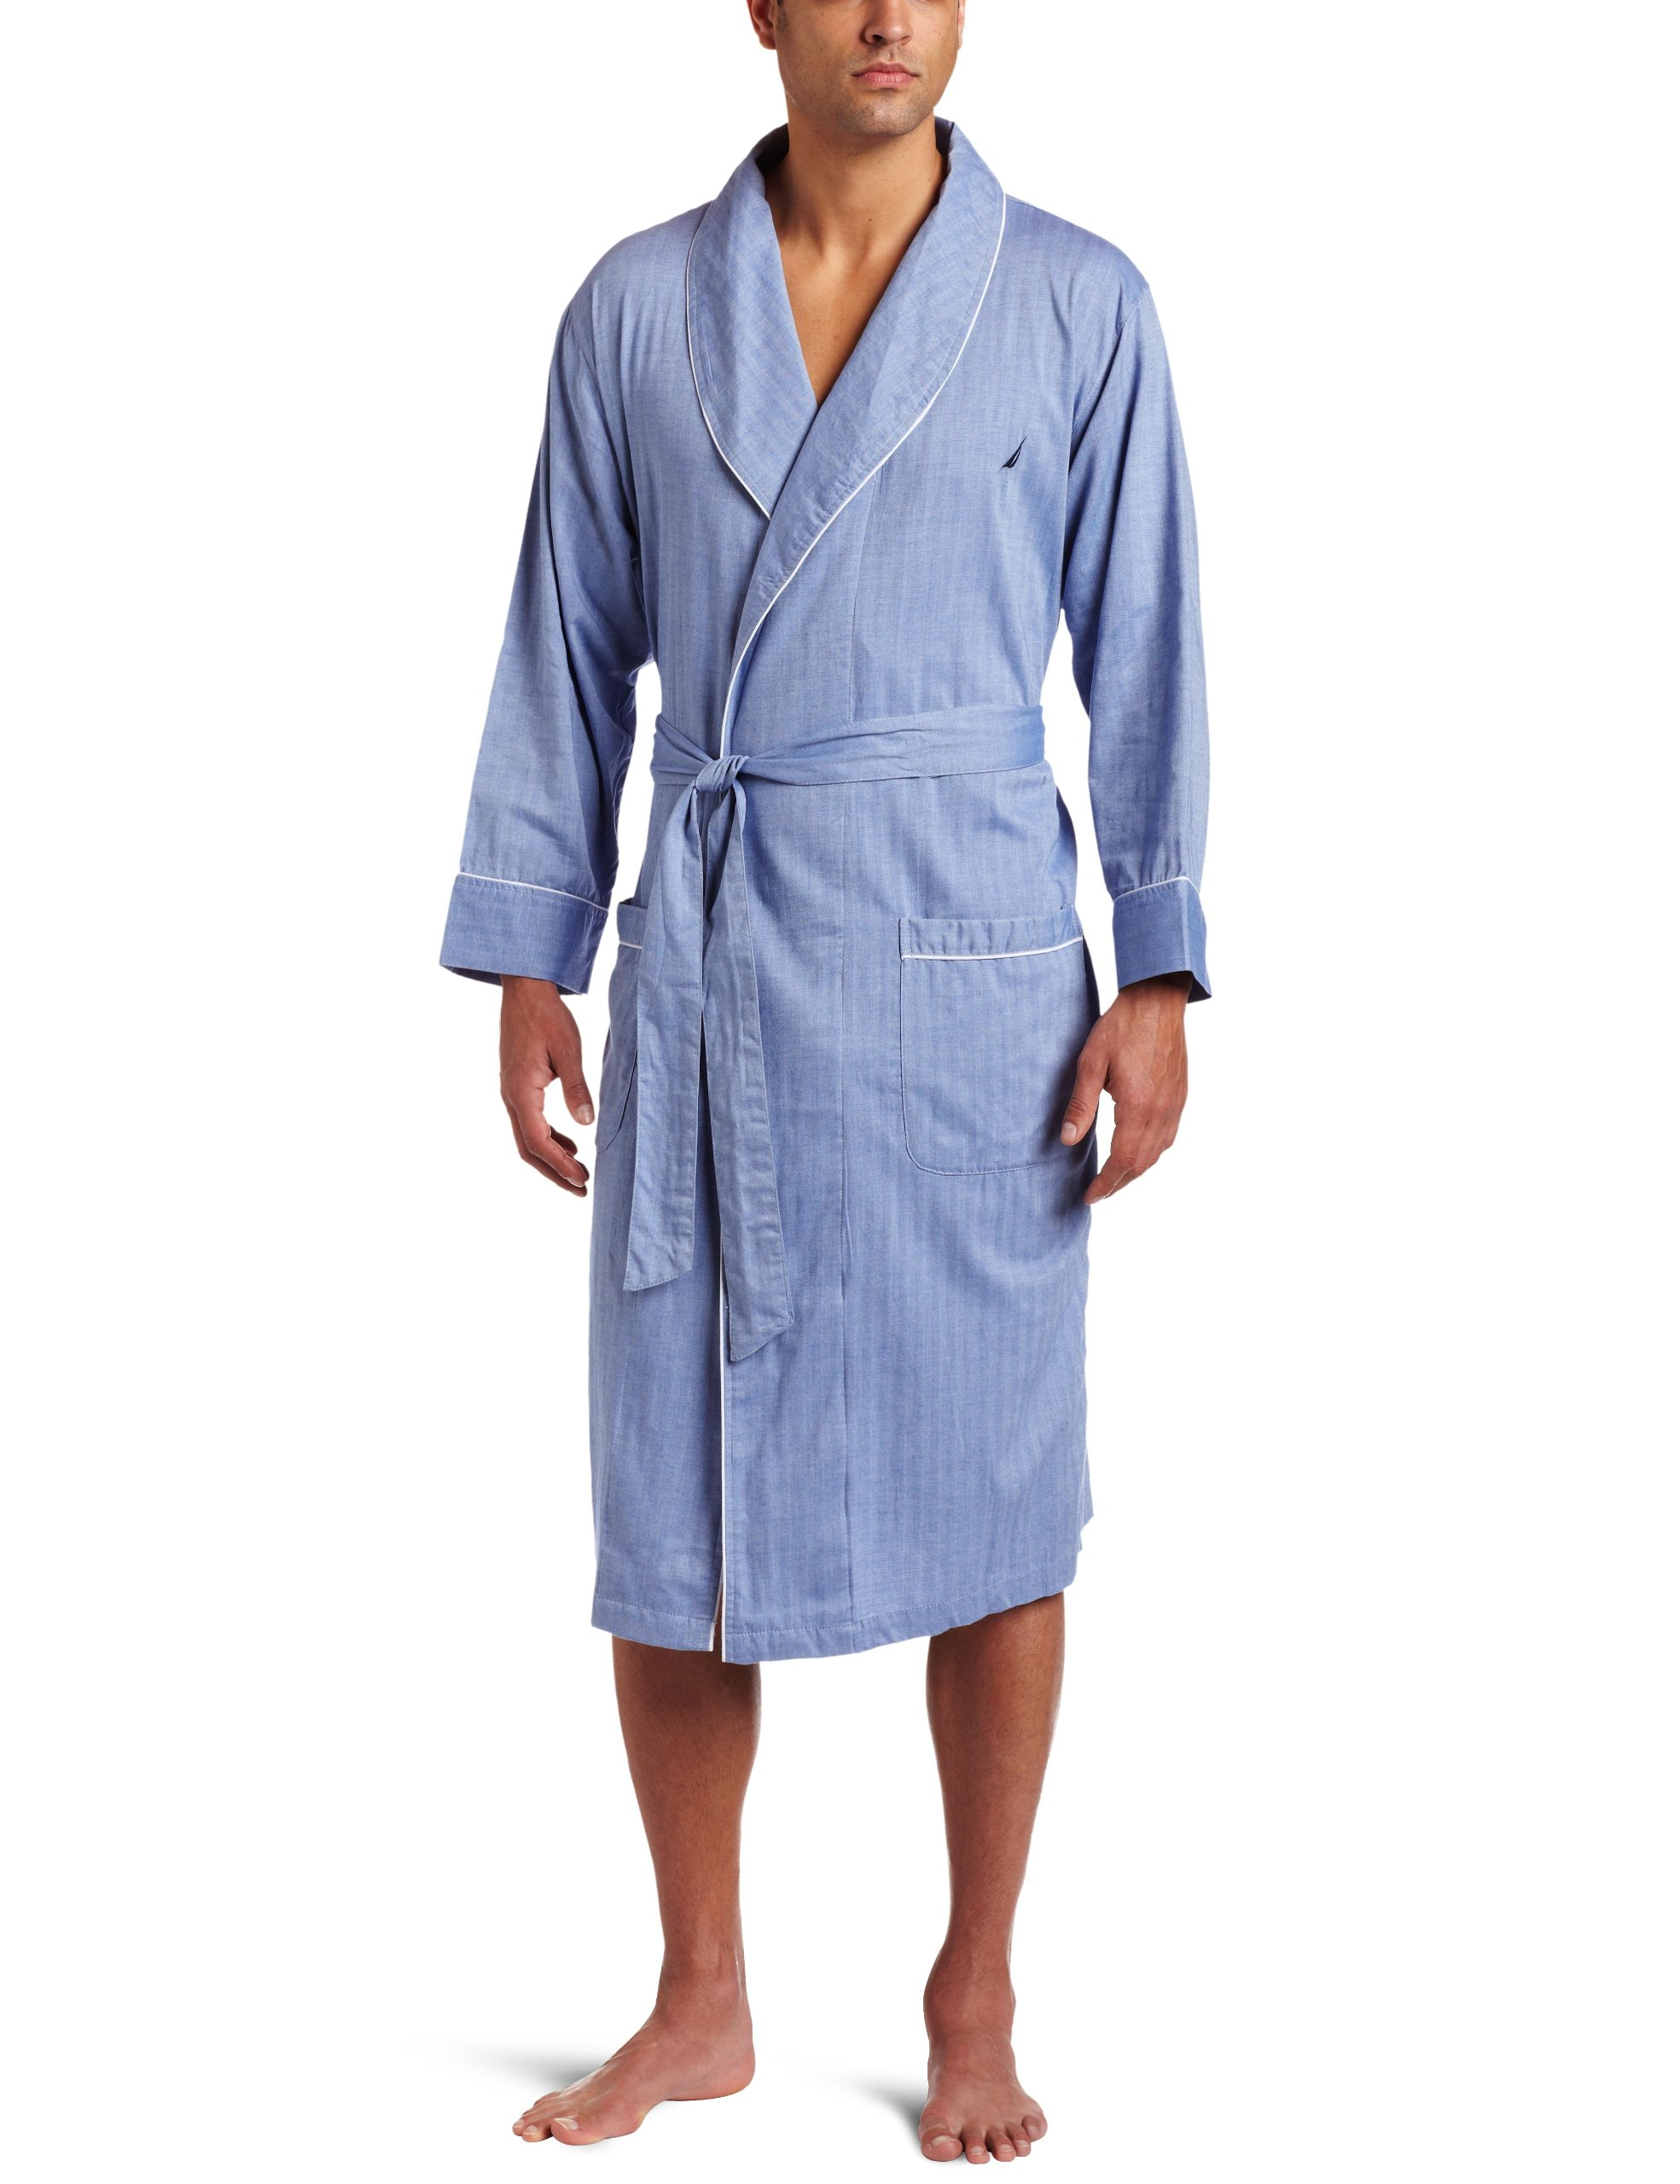 Nautica Men's Captains Herringbone Woven Shawl Collar Robe,Blue Bone,Large/X-Large by Nautica